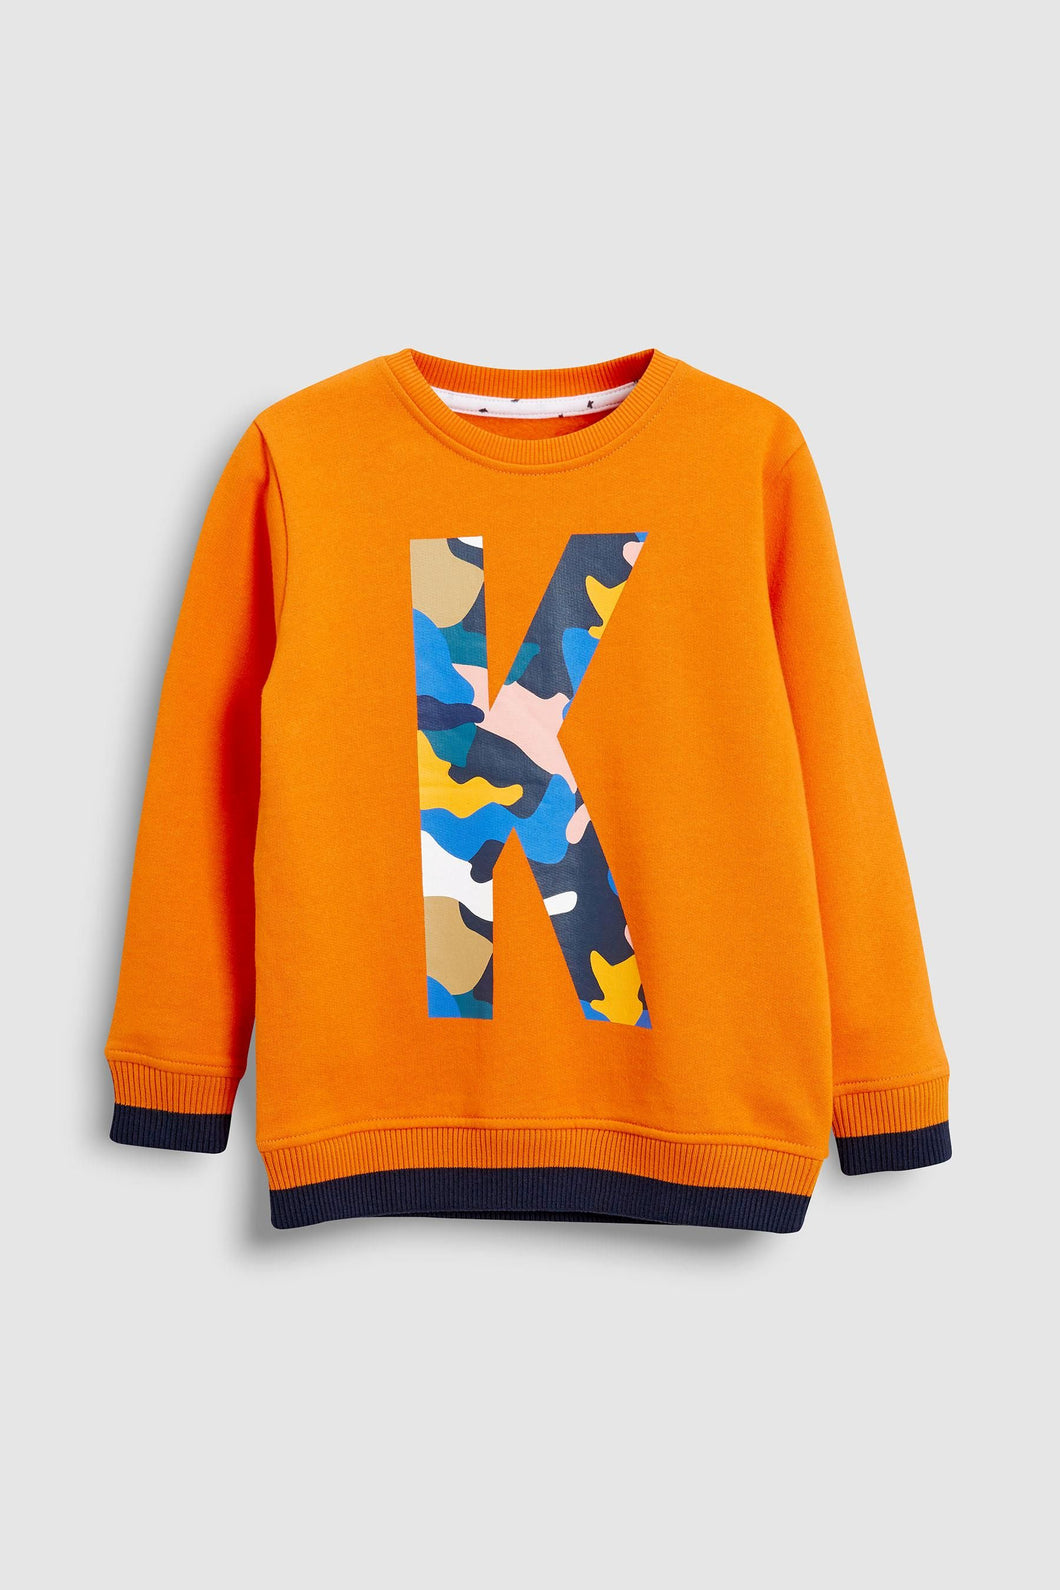 Kimba Kids by Kimberley Walsh Orange K Logo Sweatshirt